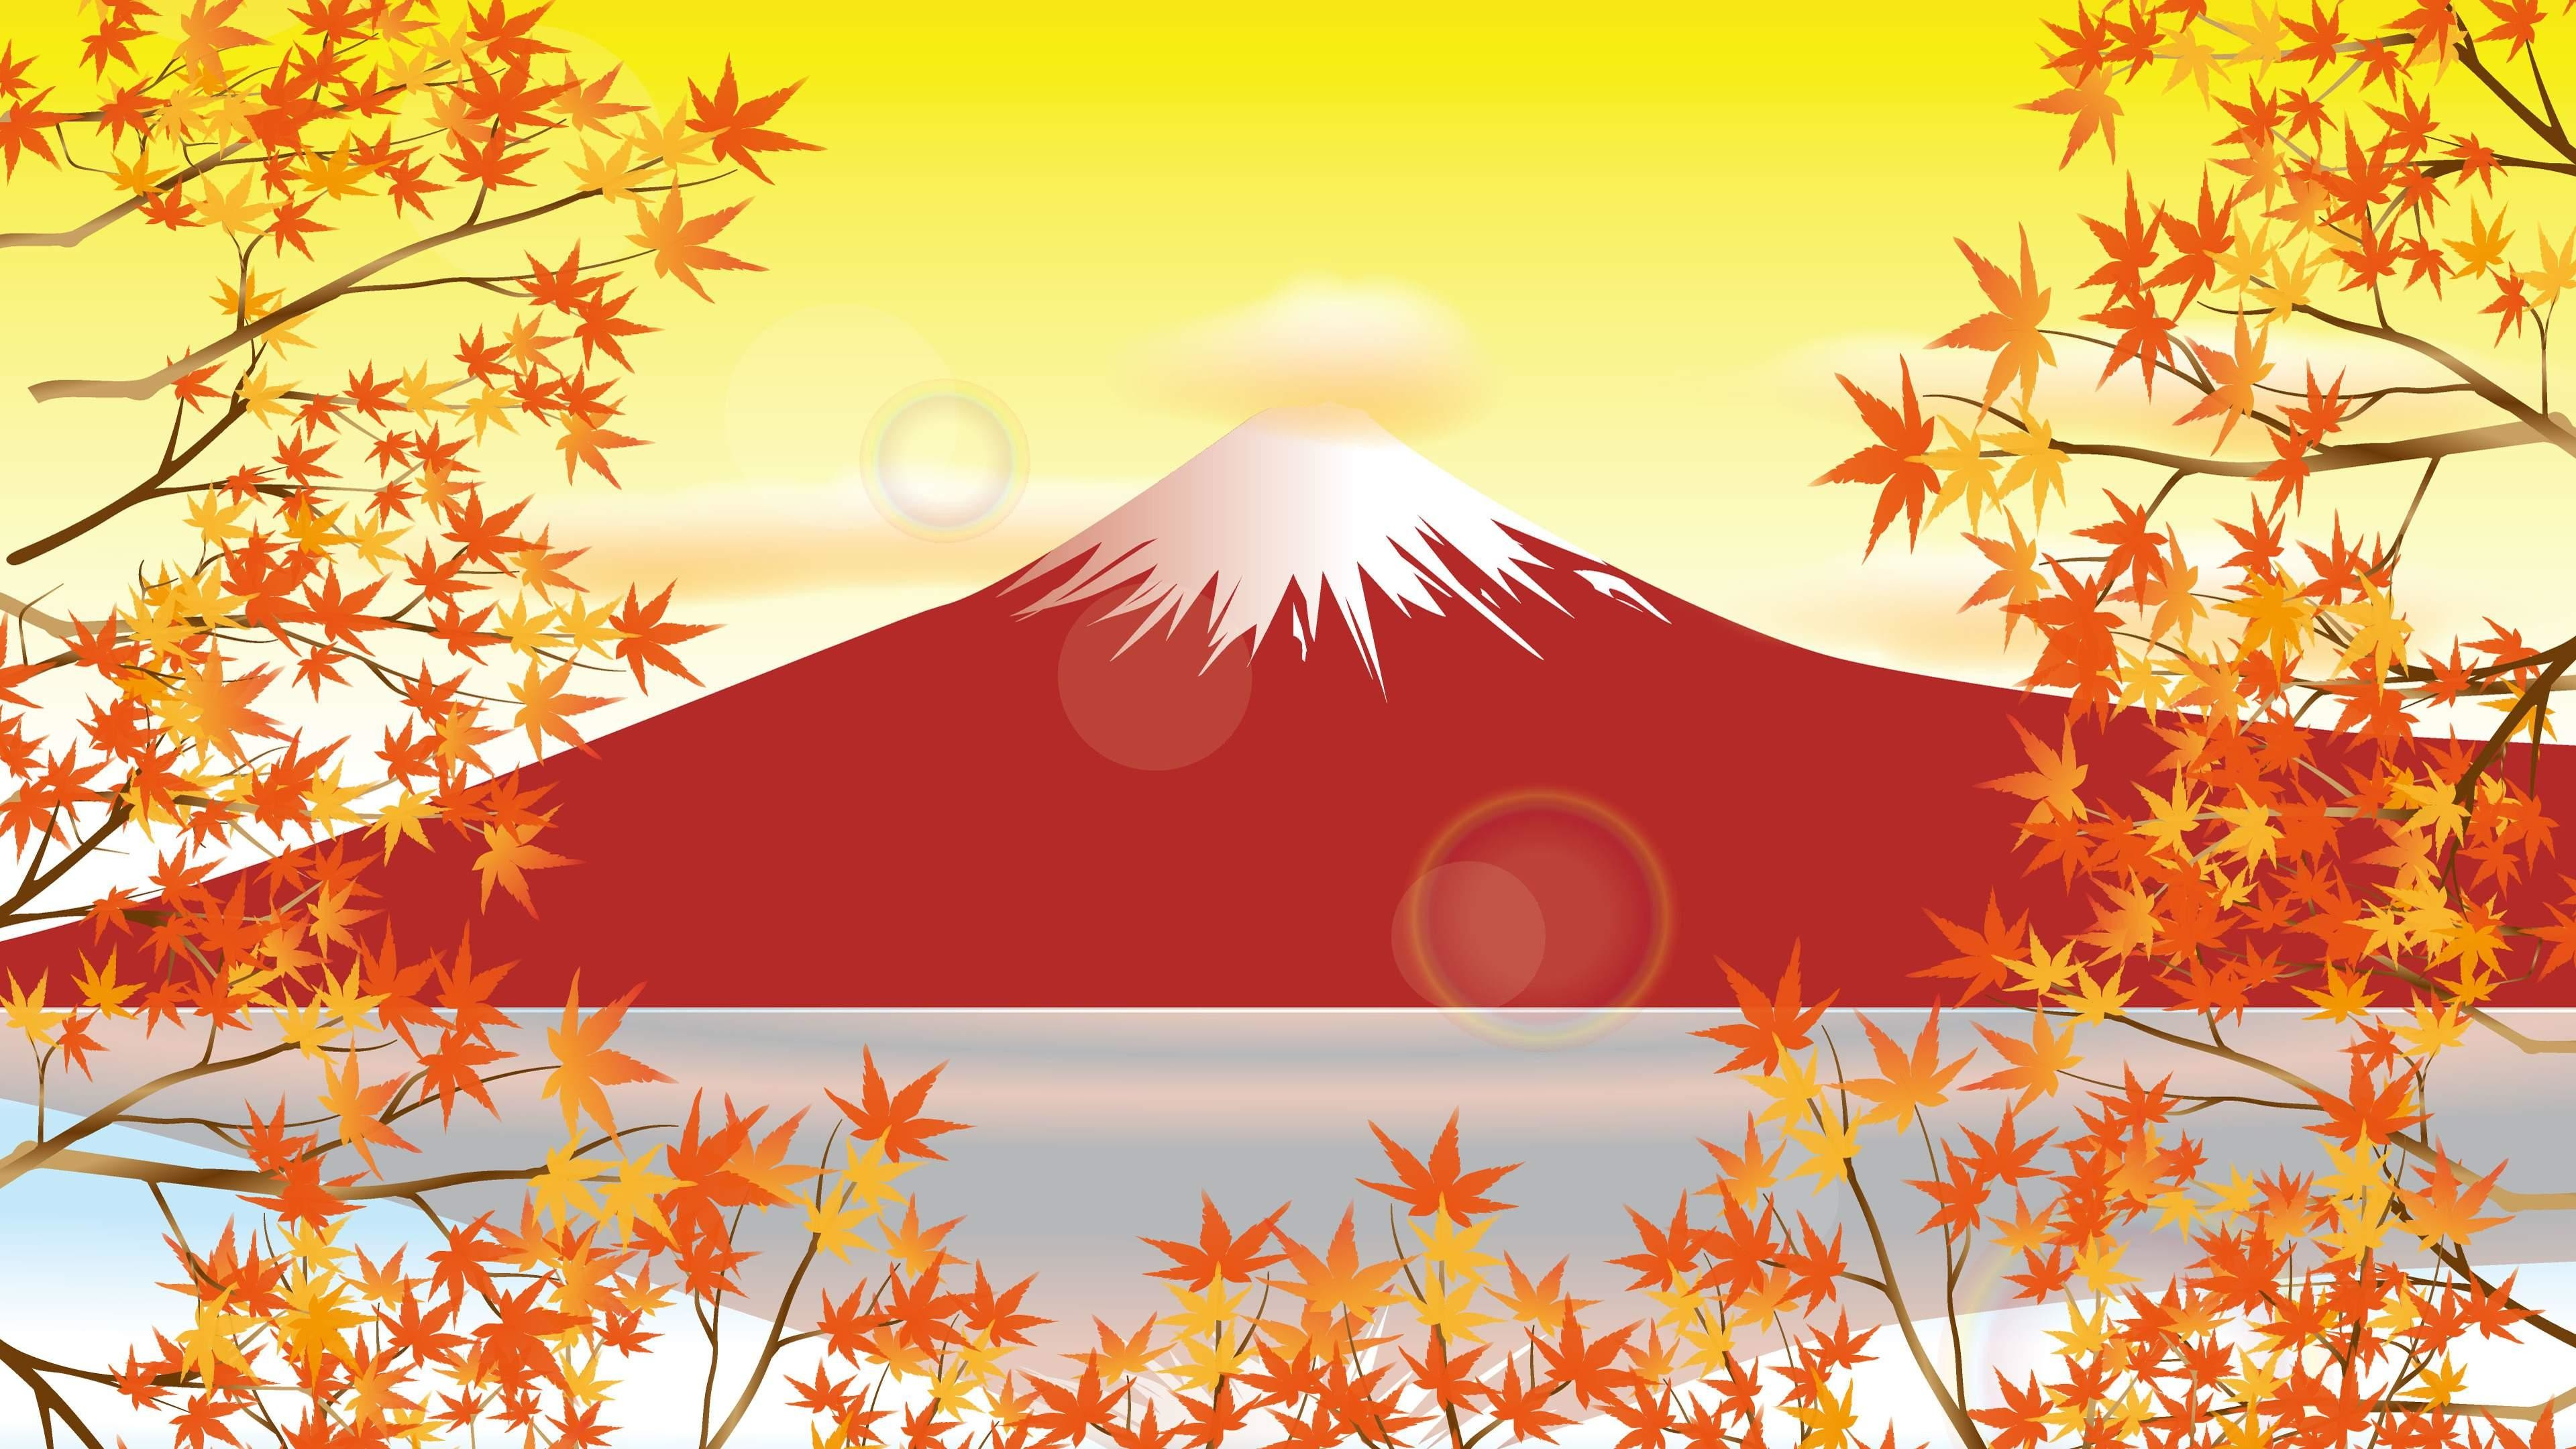 1920x1080 Search Results For Japanese Landscape Art Wallpaper Adorable Wallpapers